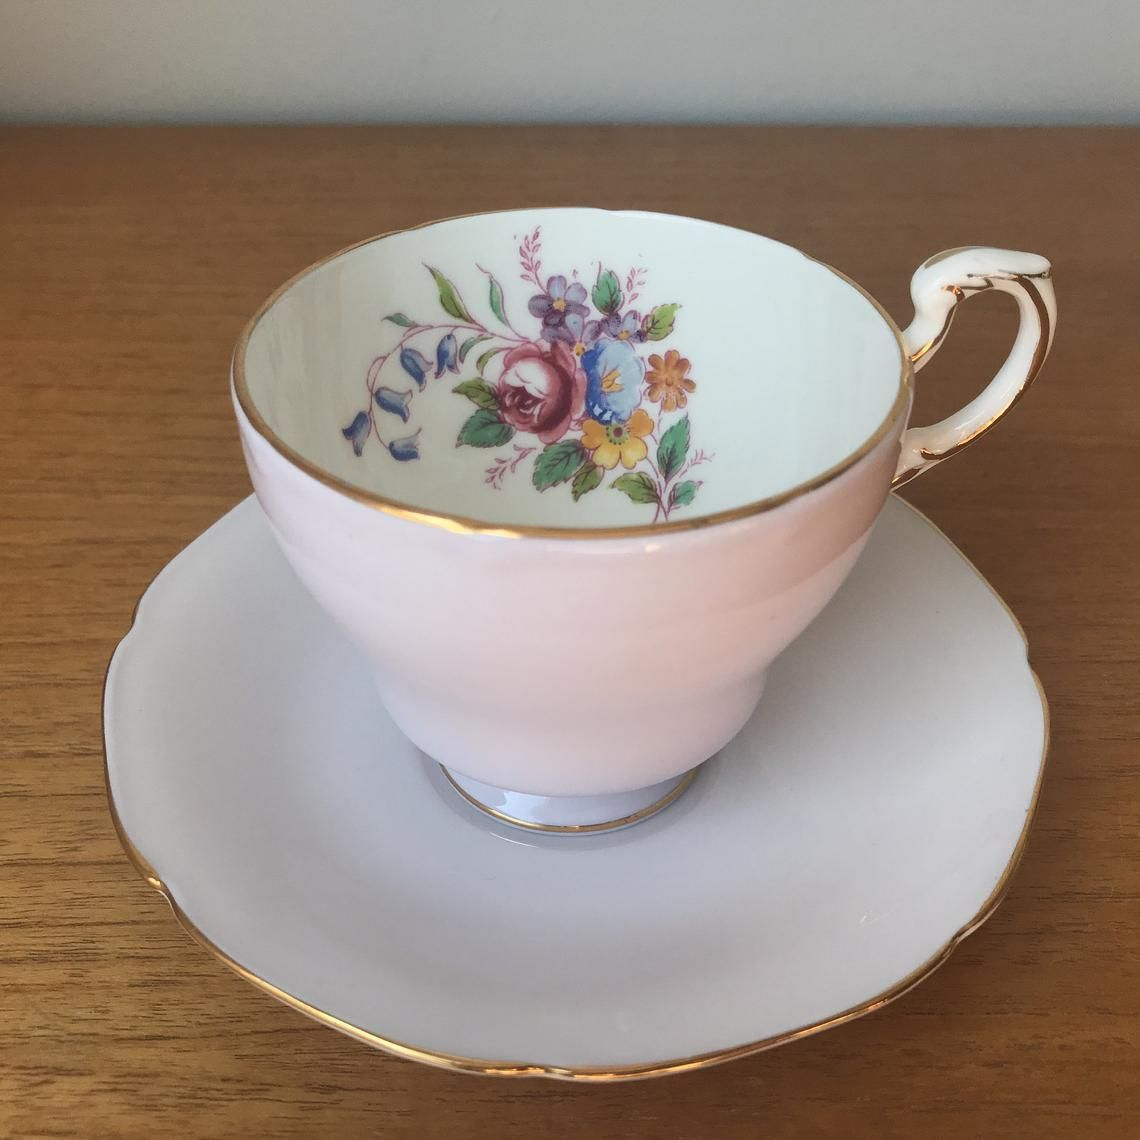 Paragon Light Purple Teacup and Saucer, Pastel Purple Tea Cup and Saucer, Vintage Floral English Bone China